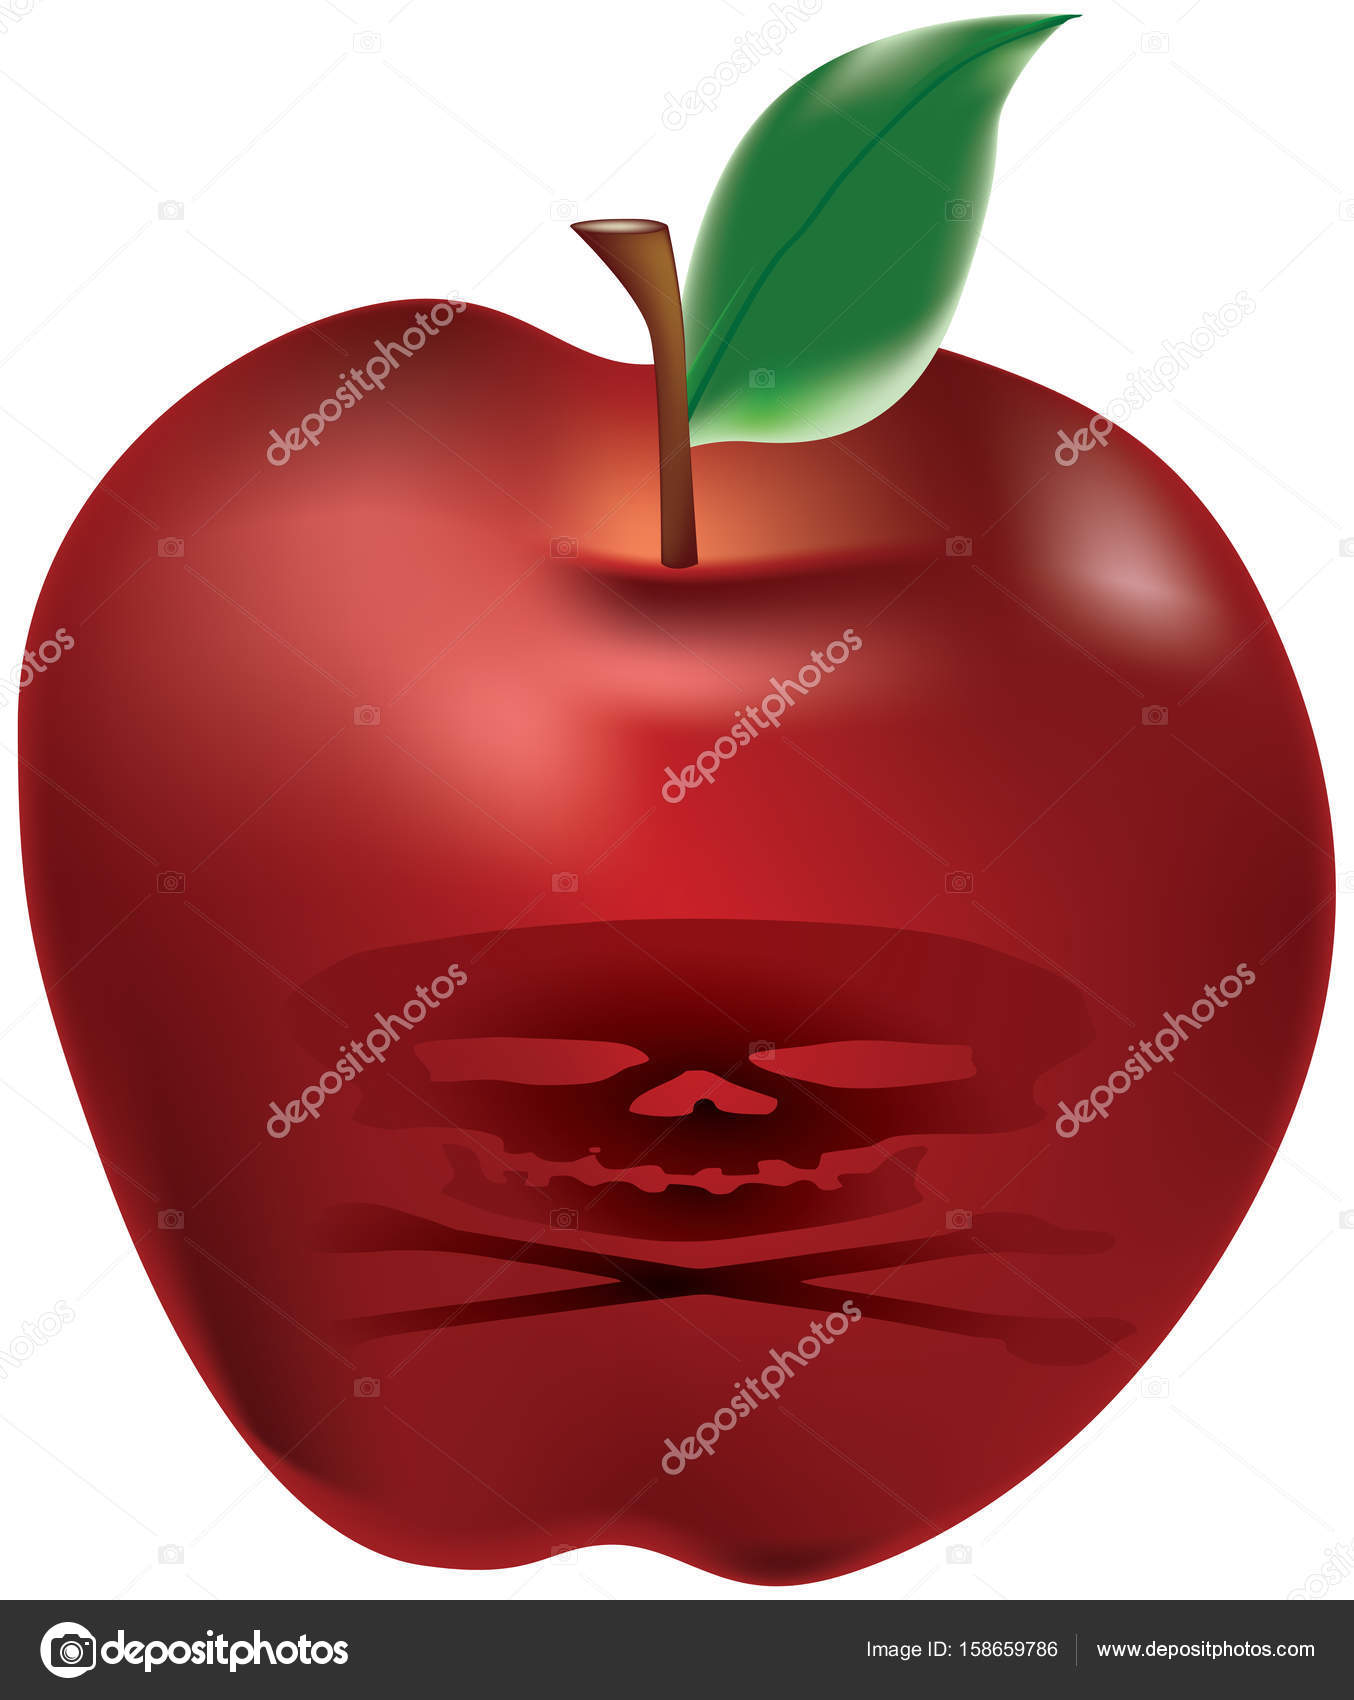 Poisonous red apple stock vector ninagorina 158659786 a poisonous red apple with a symbol of the skull and crossed bones vector by ninagorina buycottarizona